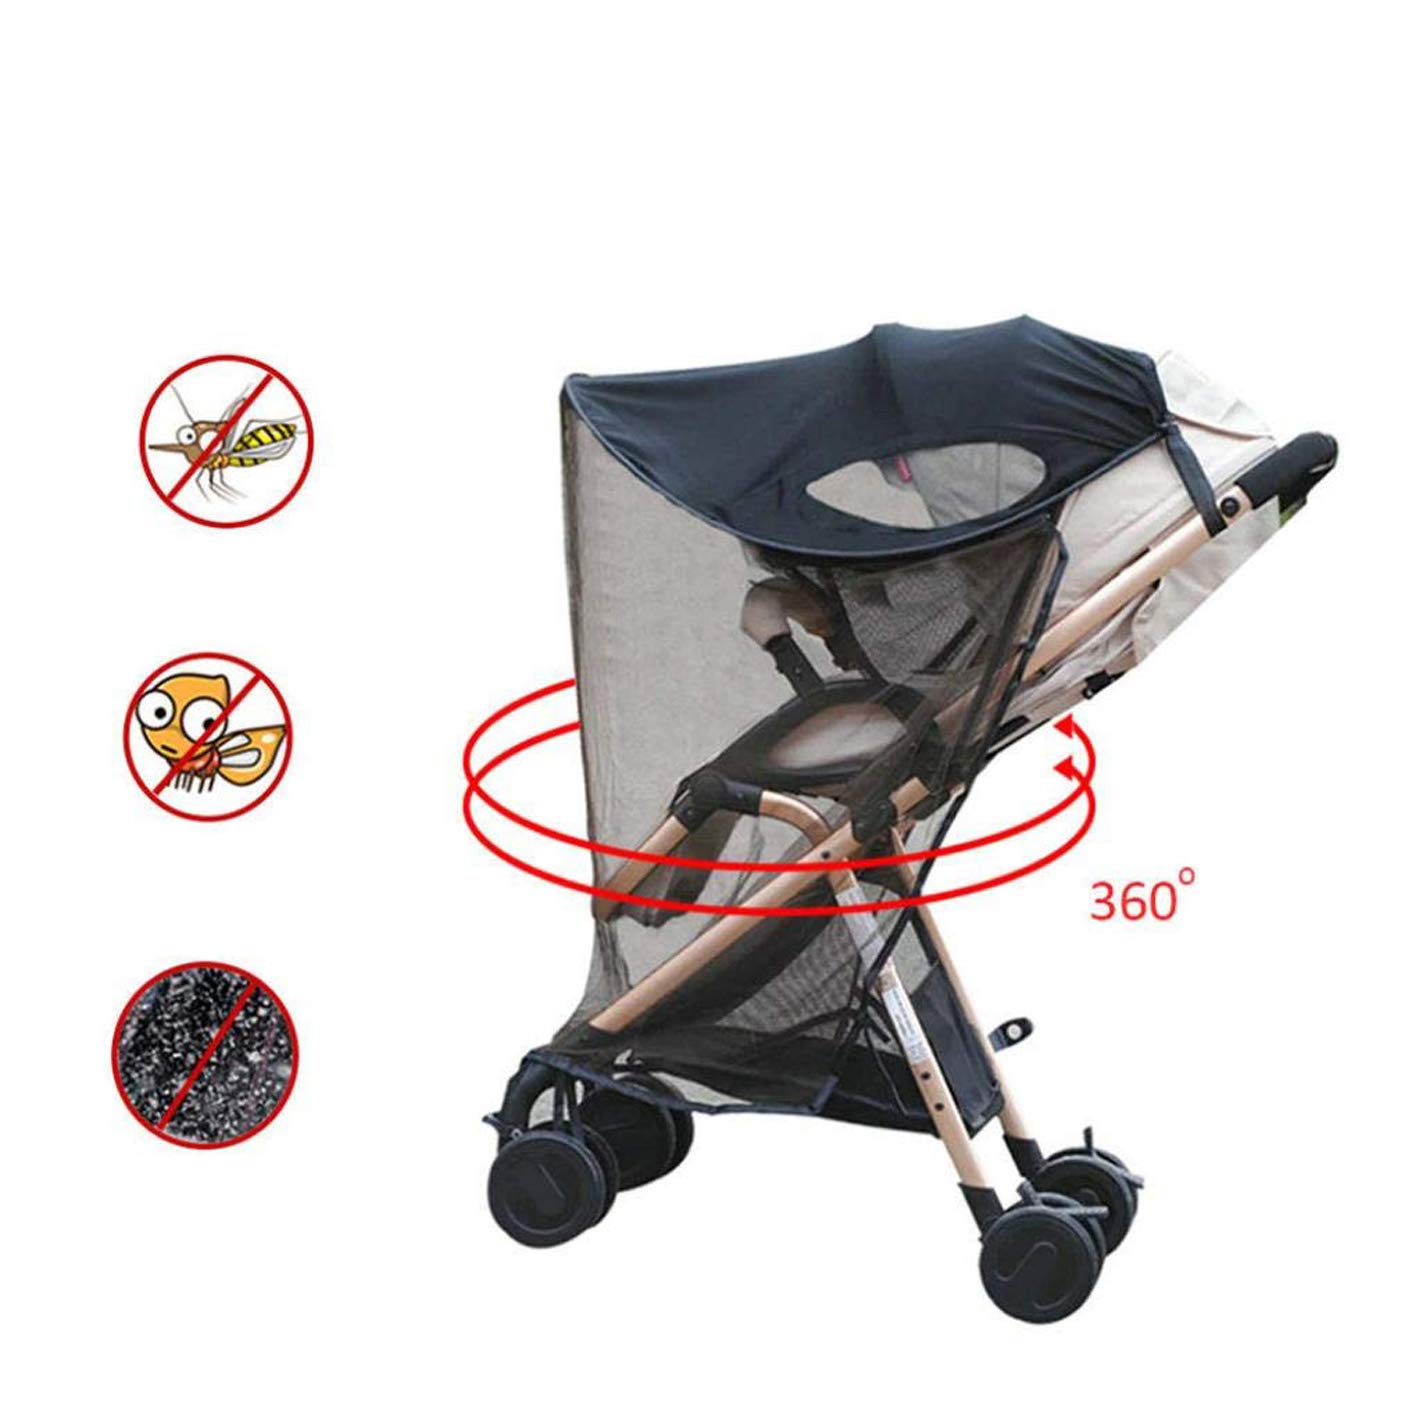 Universal Stroller Sunshade Canopy with Mosquito Net Insect Shield Netting Anti-UV Baby Stroller Sun Visor Infant Carriage Trolley Parasols Canopy Cover for Prams Stroller Car Seat Buggy Pushchair